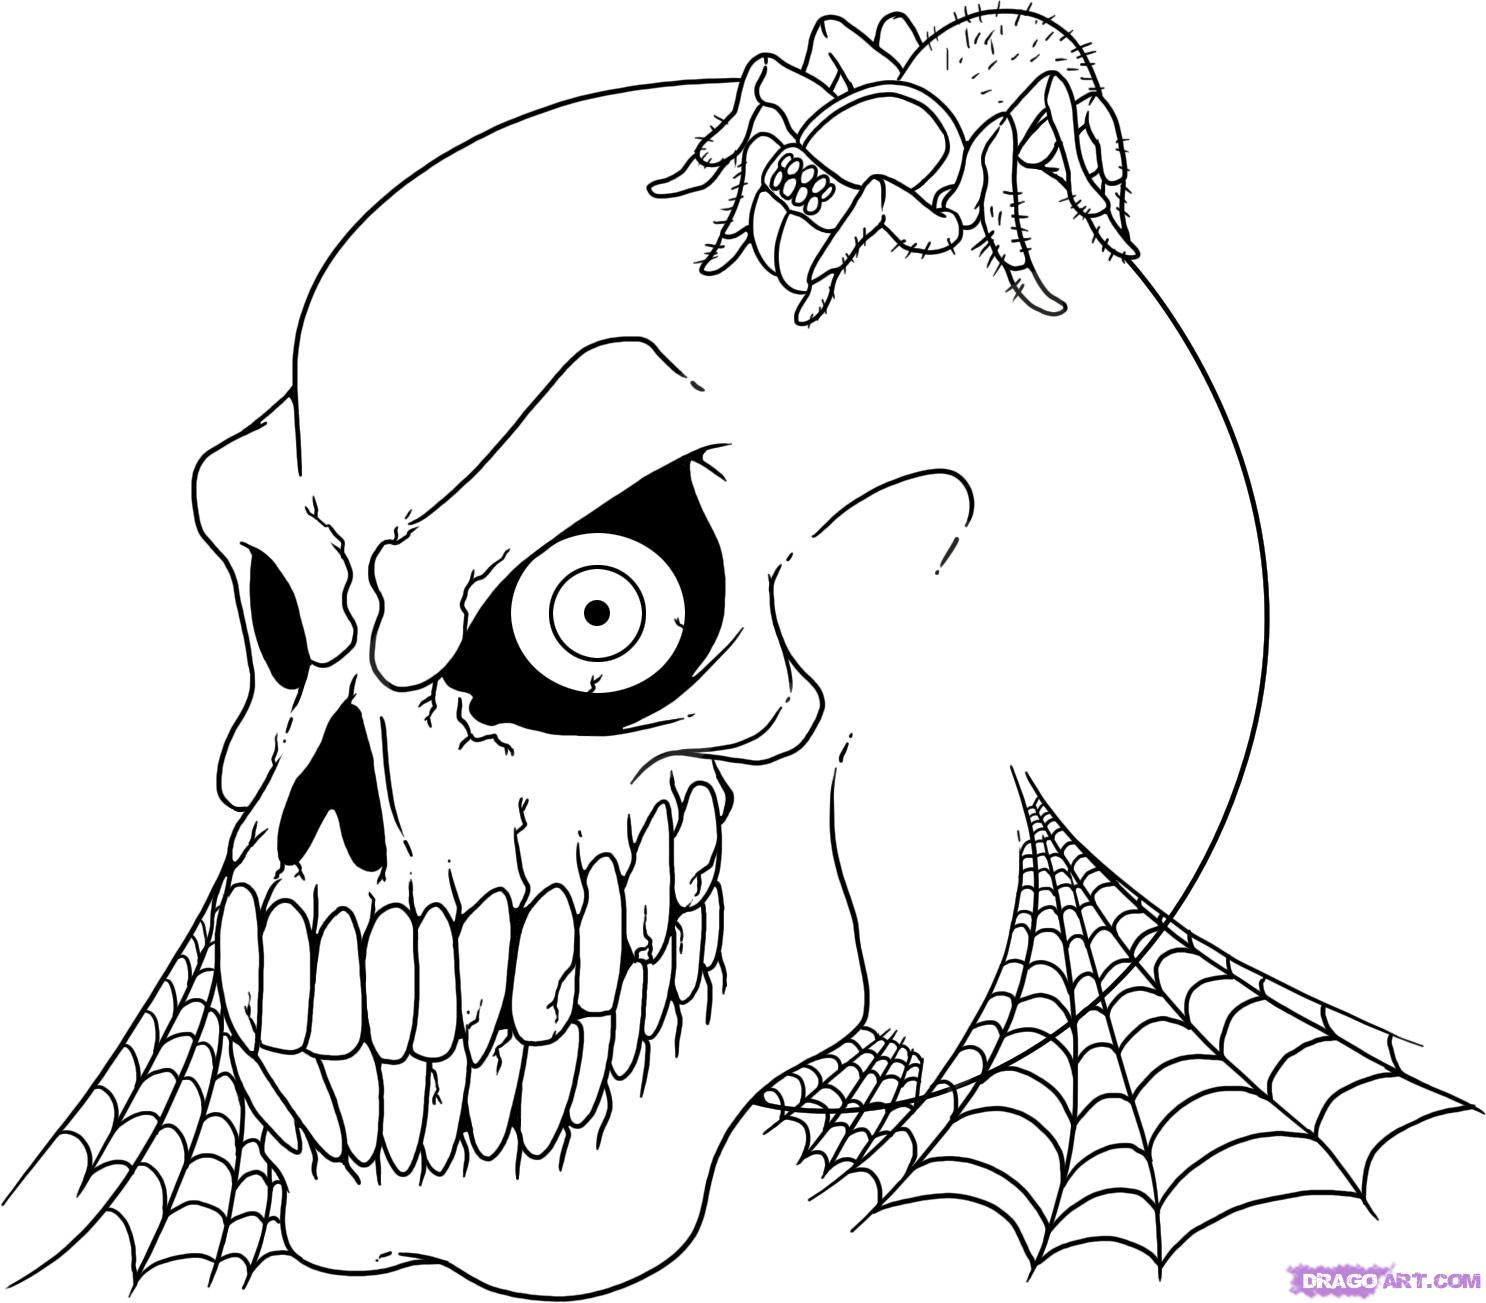 halloween coloring pages for kids printable free - Halloween Coloring Pages for Kids Free Coloring Pictures